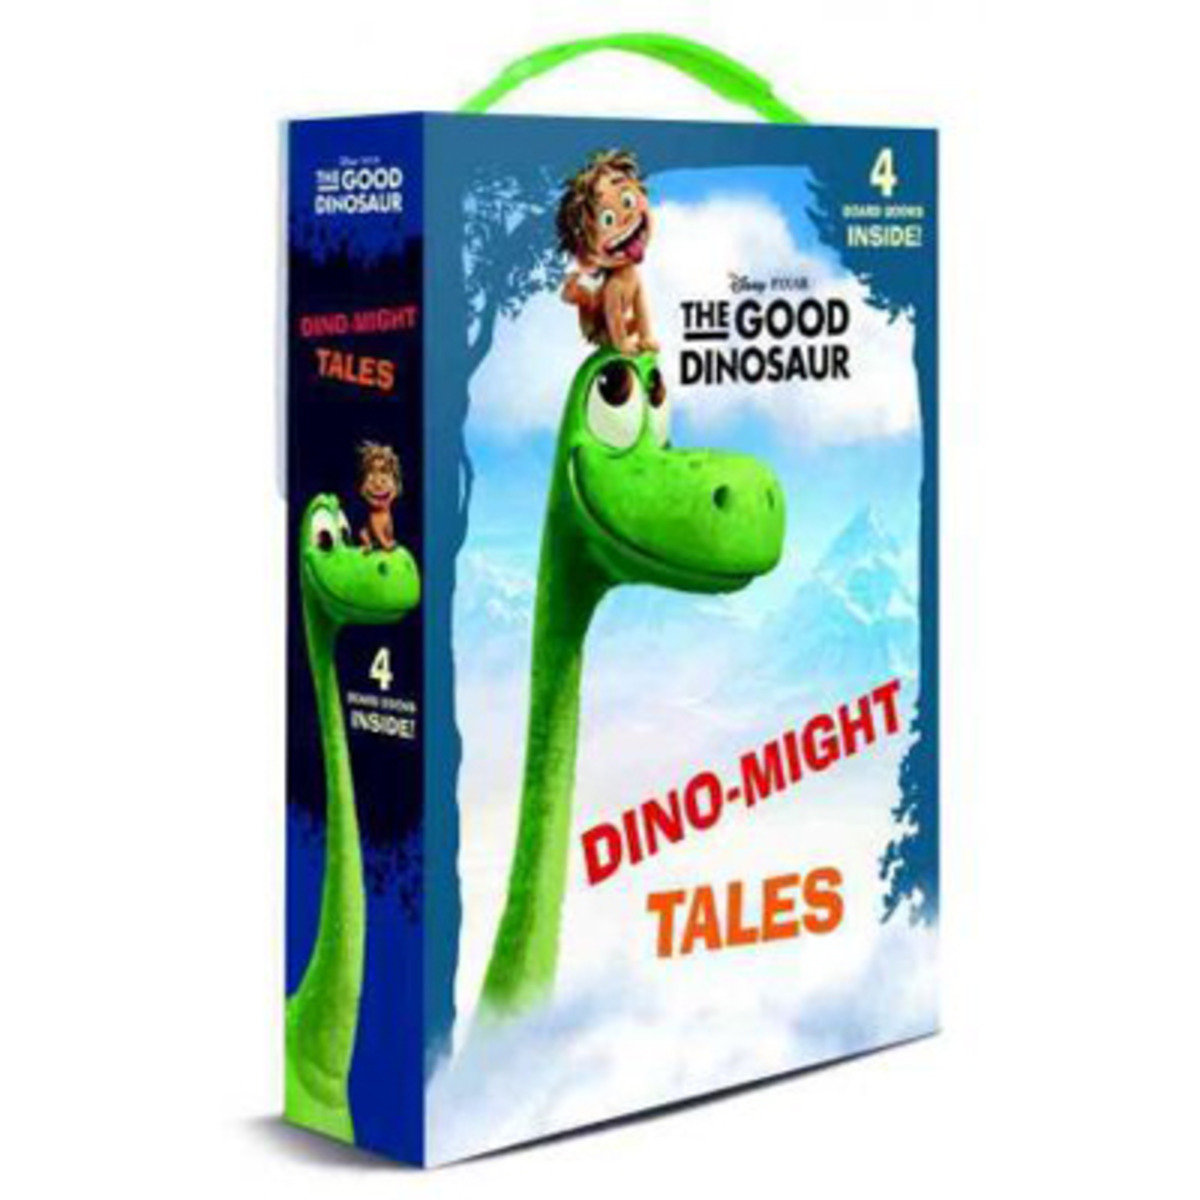 The Good Dinosaur: Dino-Might Tales